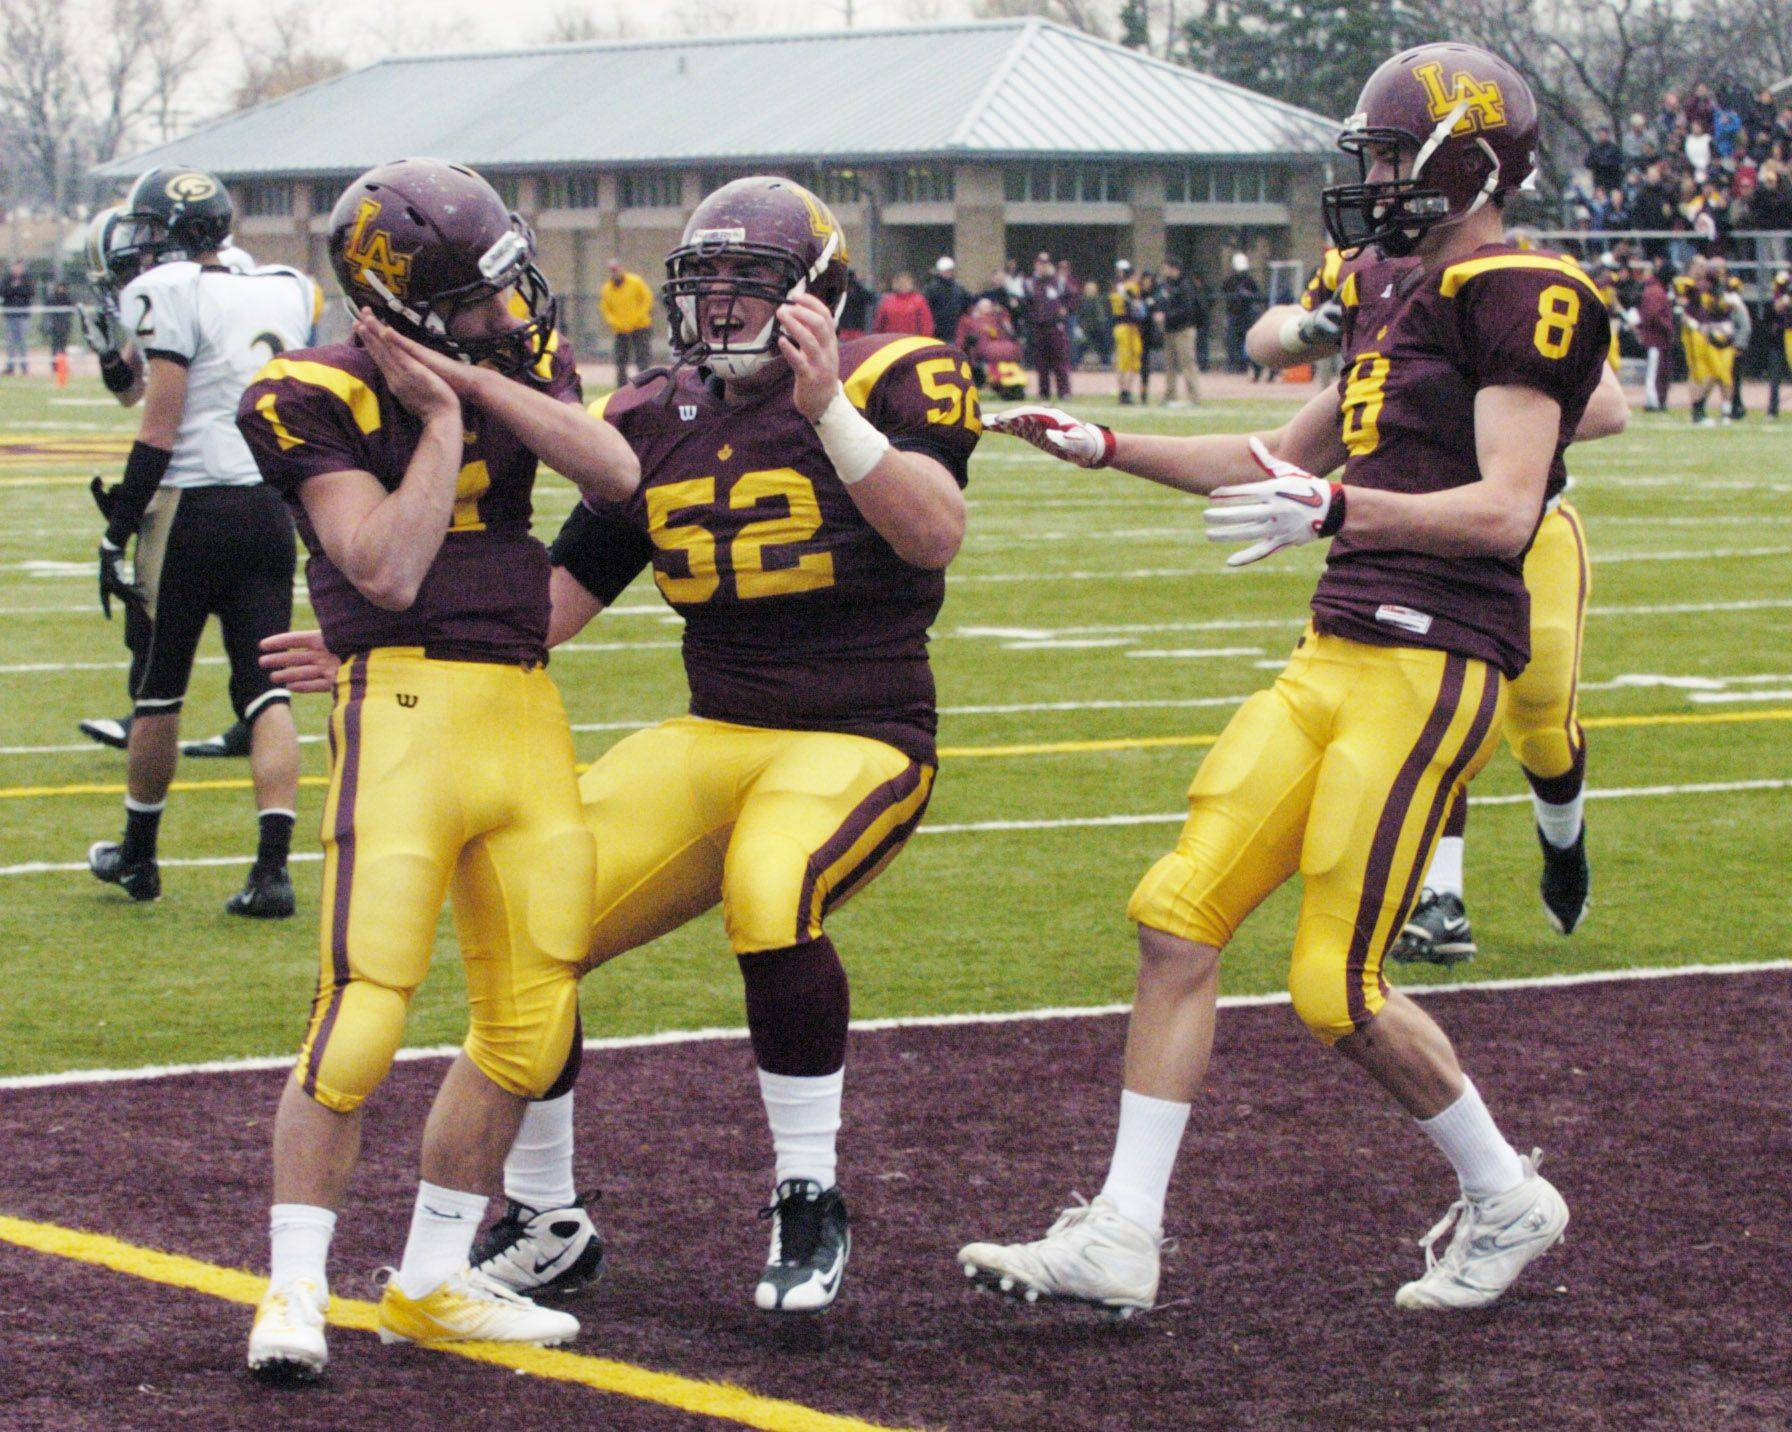 Loyola Academy's William Pavilos, left, celebrates his touchdown with teammate Robert Delaney, middle, and Charlie Dowdle during Saturday's win against Glenbard North.